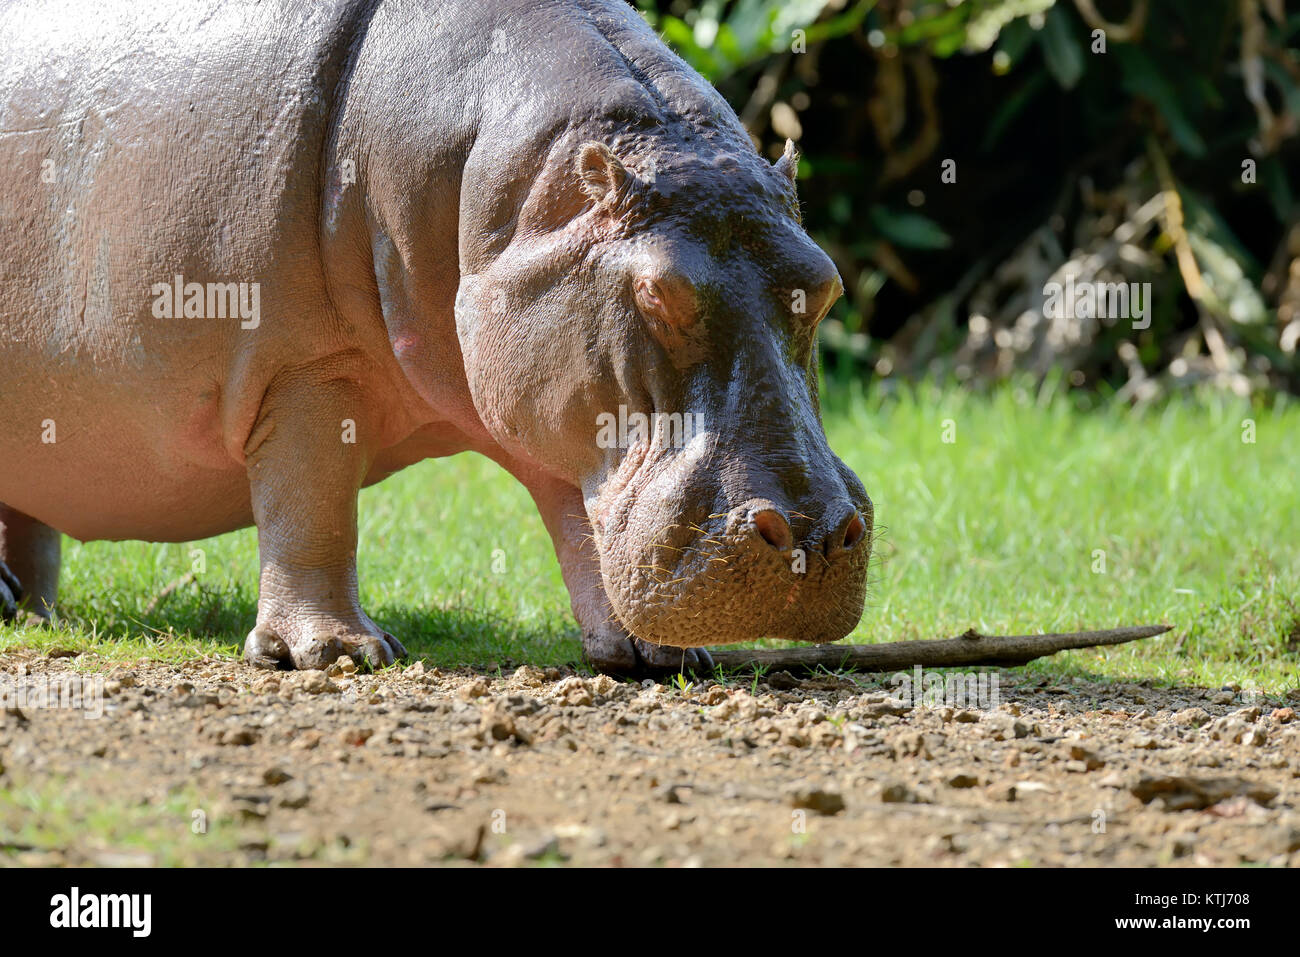 Hippo family (Hippopotamus amphibius) outside the water, Africa - Stock Image